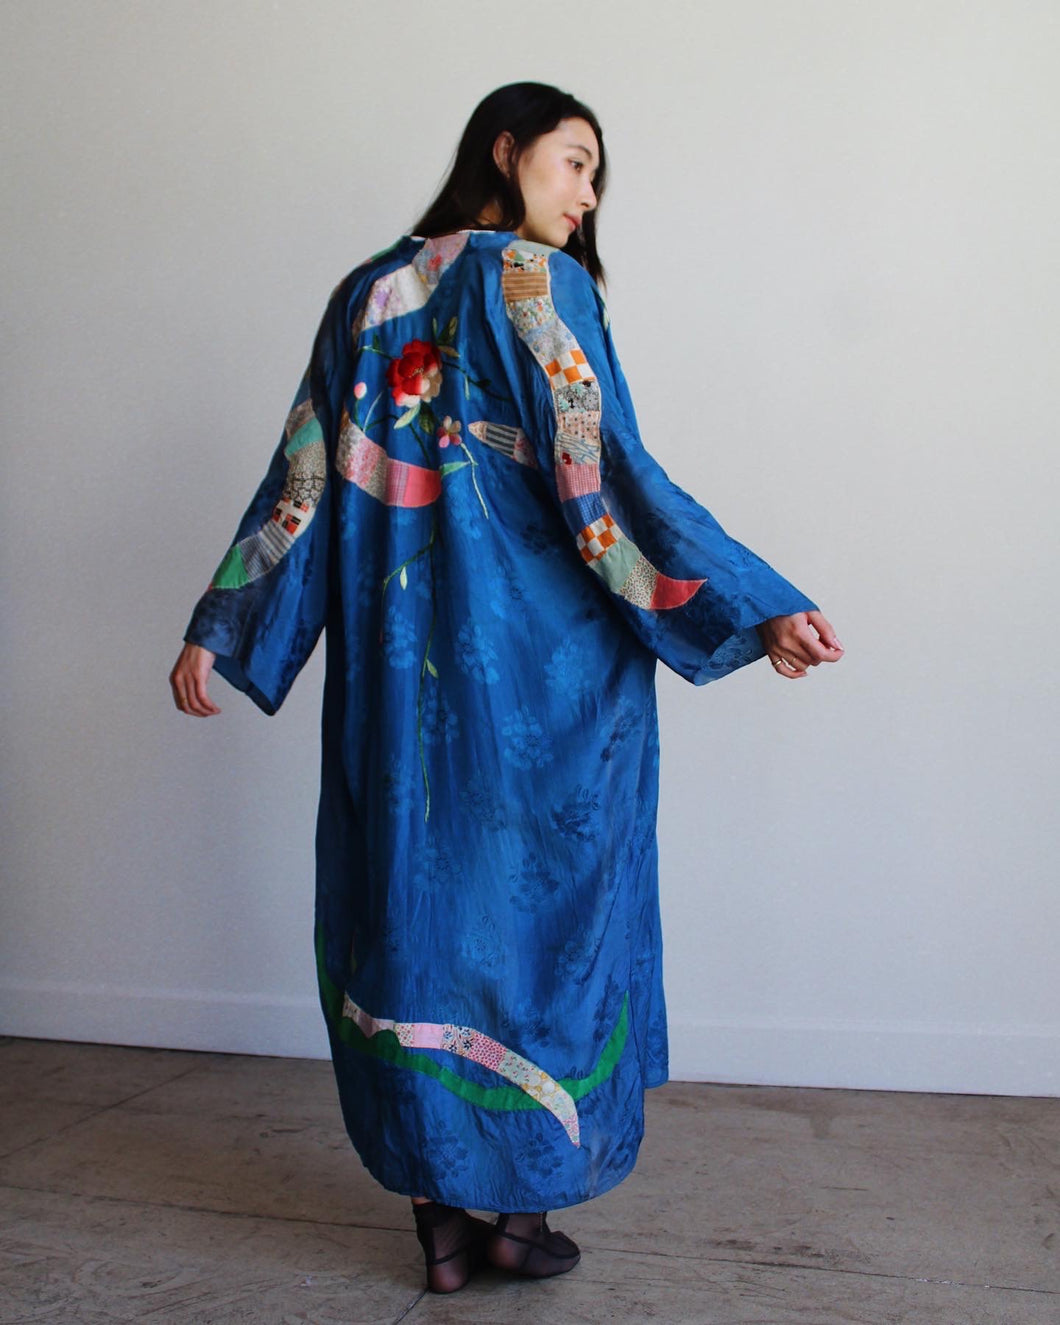 The Serpent Robe